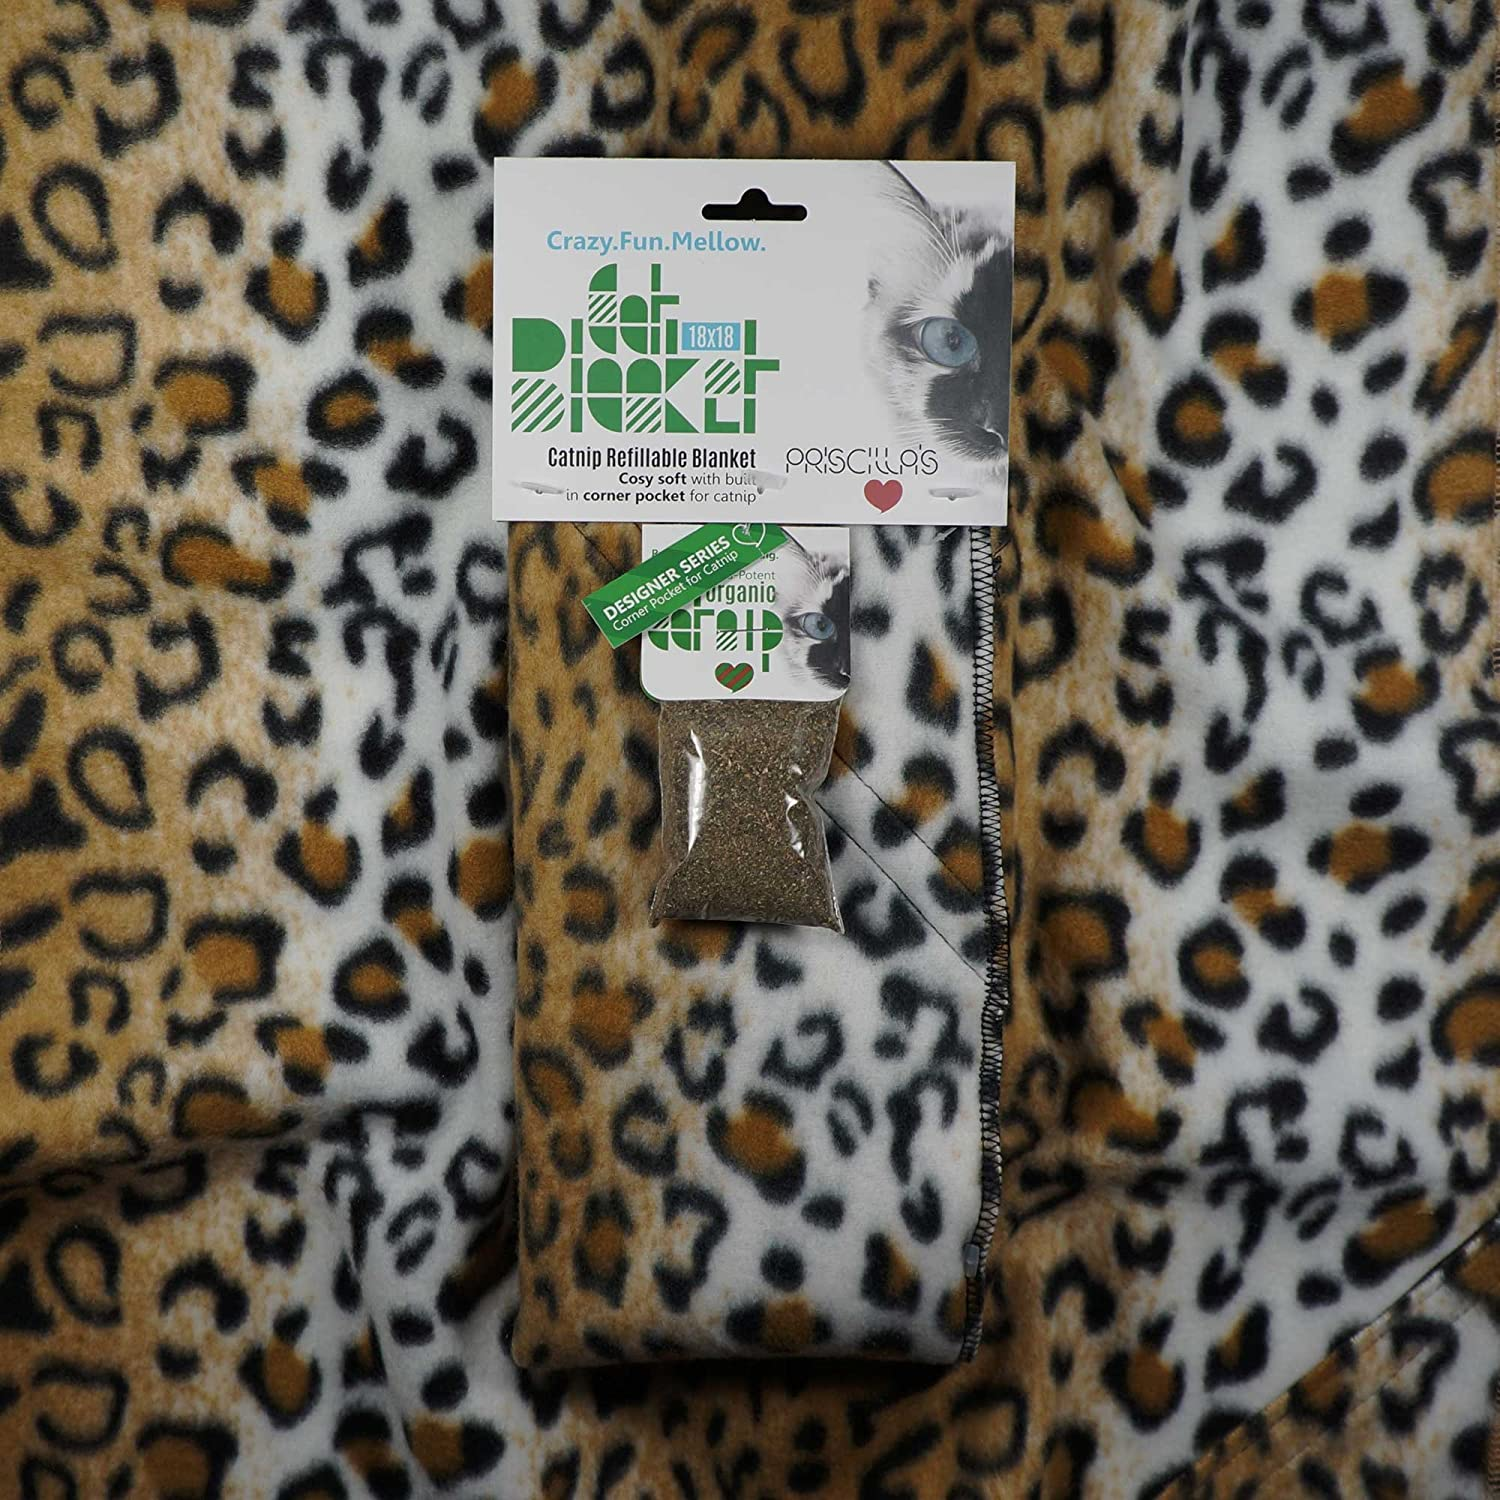 Cat Blanket 18 x 18 Cozy Soft with Built in Corner Pocket for Catnip (Free Catnip Included) (Cheetah)